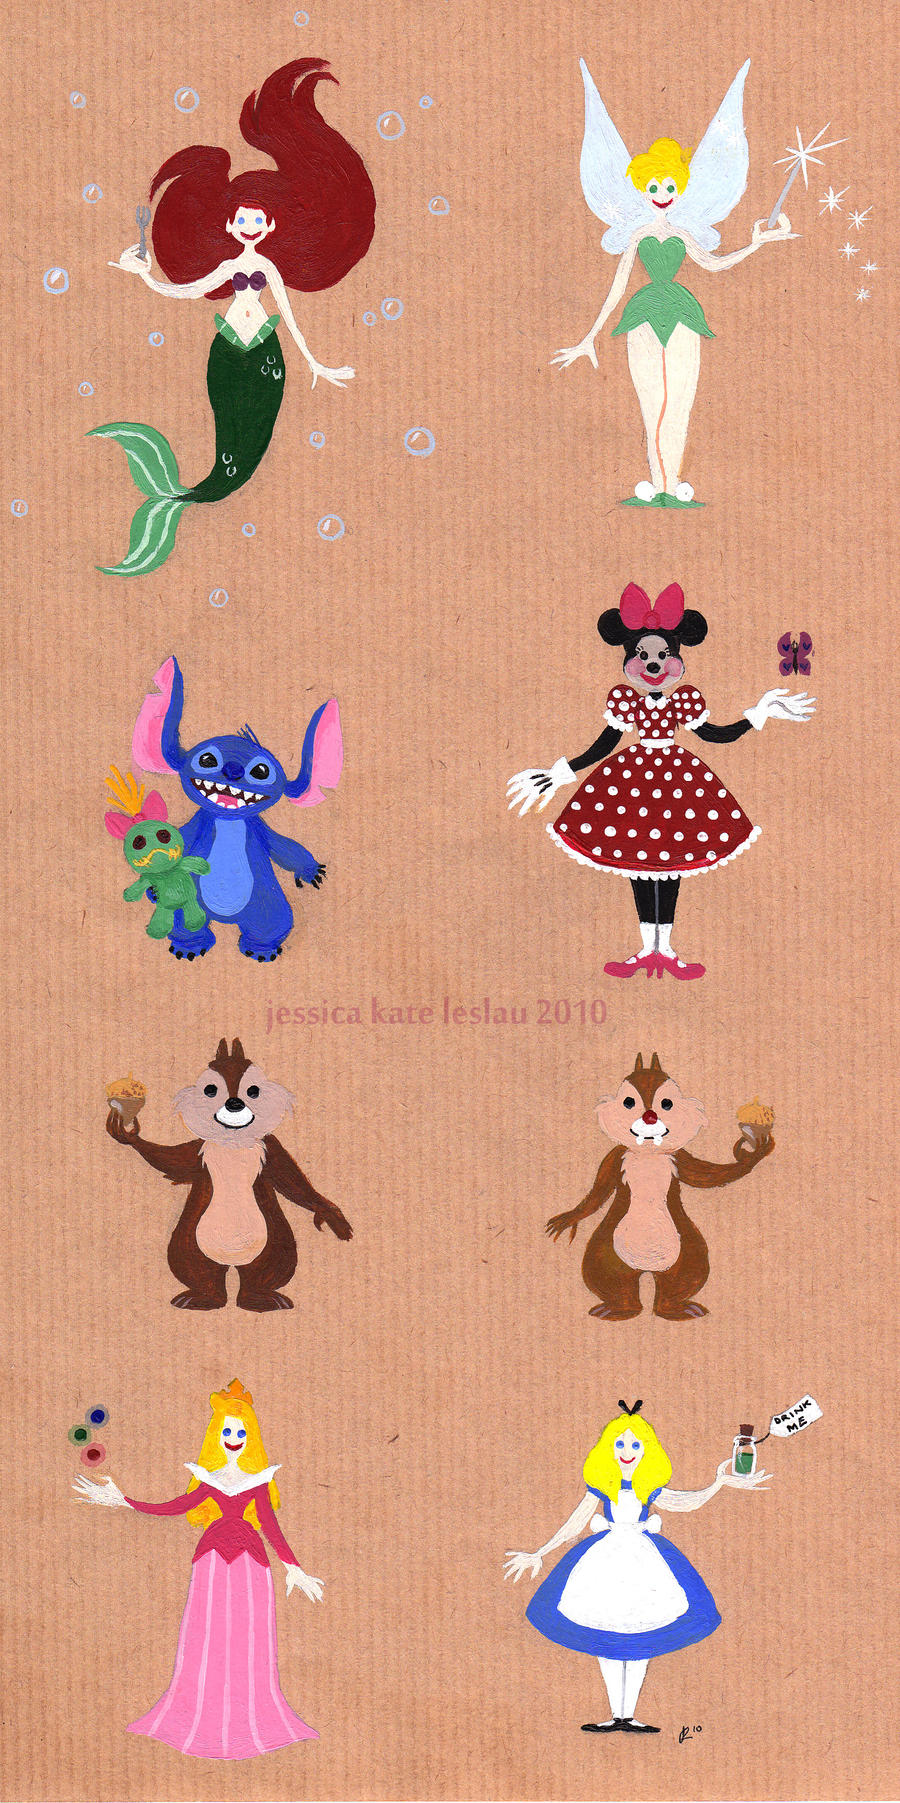 Painted Disney Characters 2 By DaiskiAnimeJ